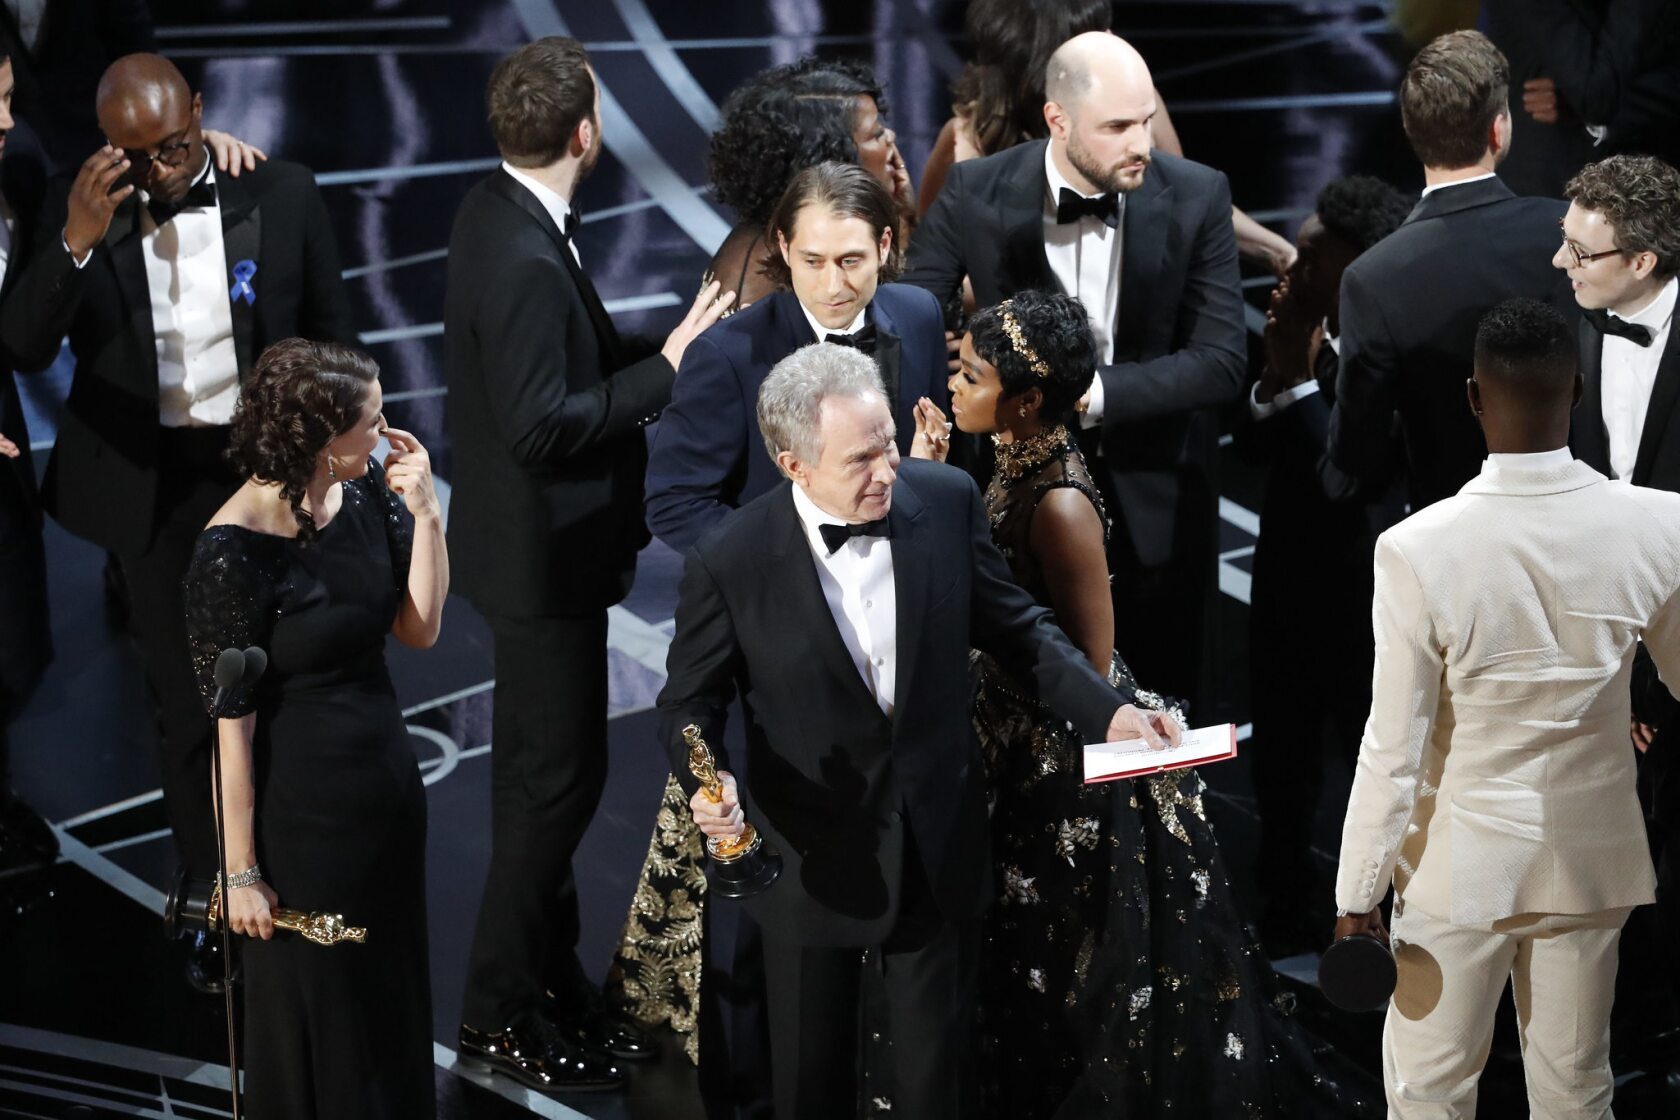 Academy Awards 2017: Complete list of Oscar winners and